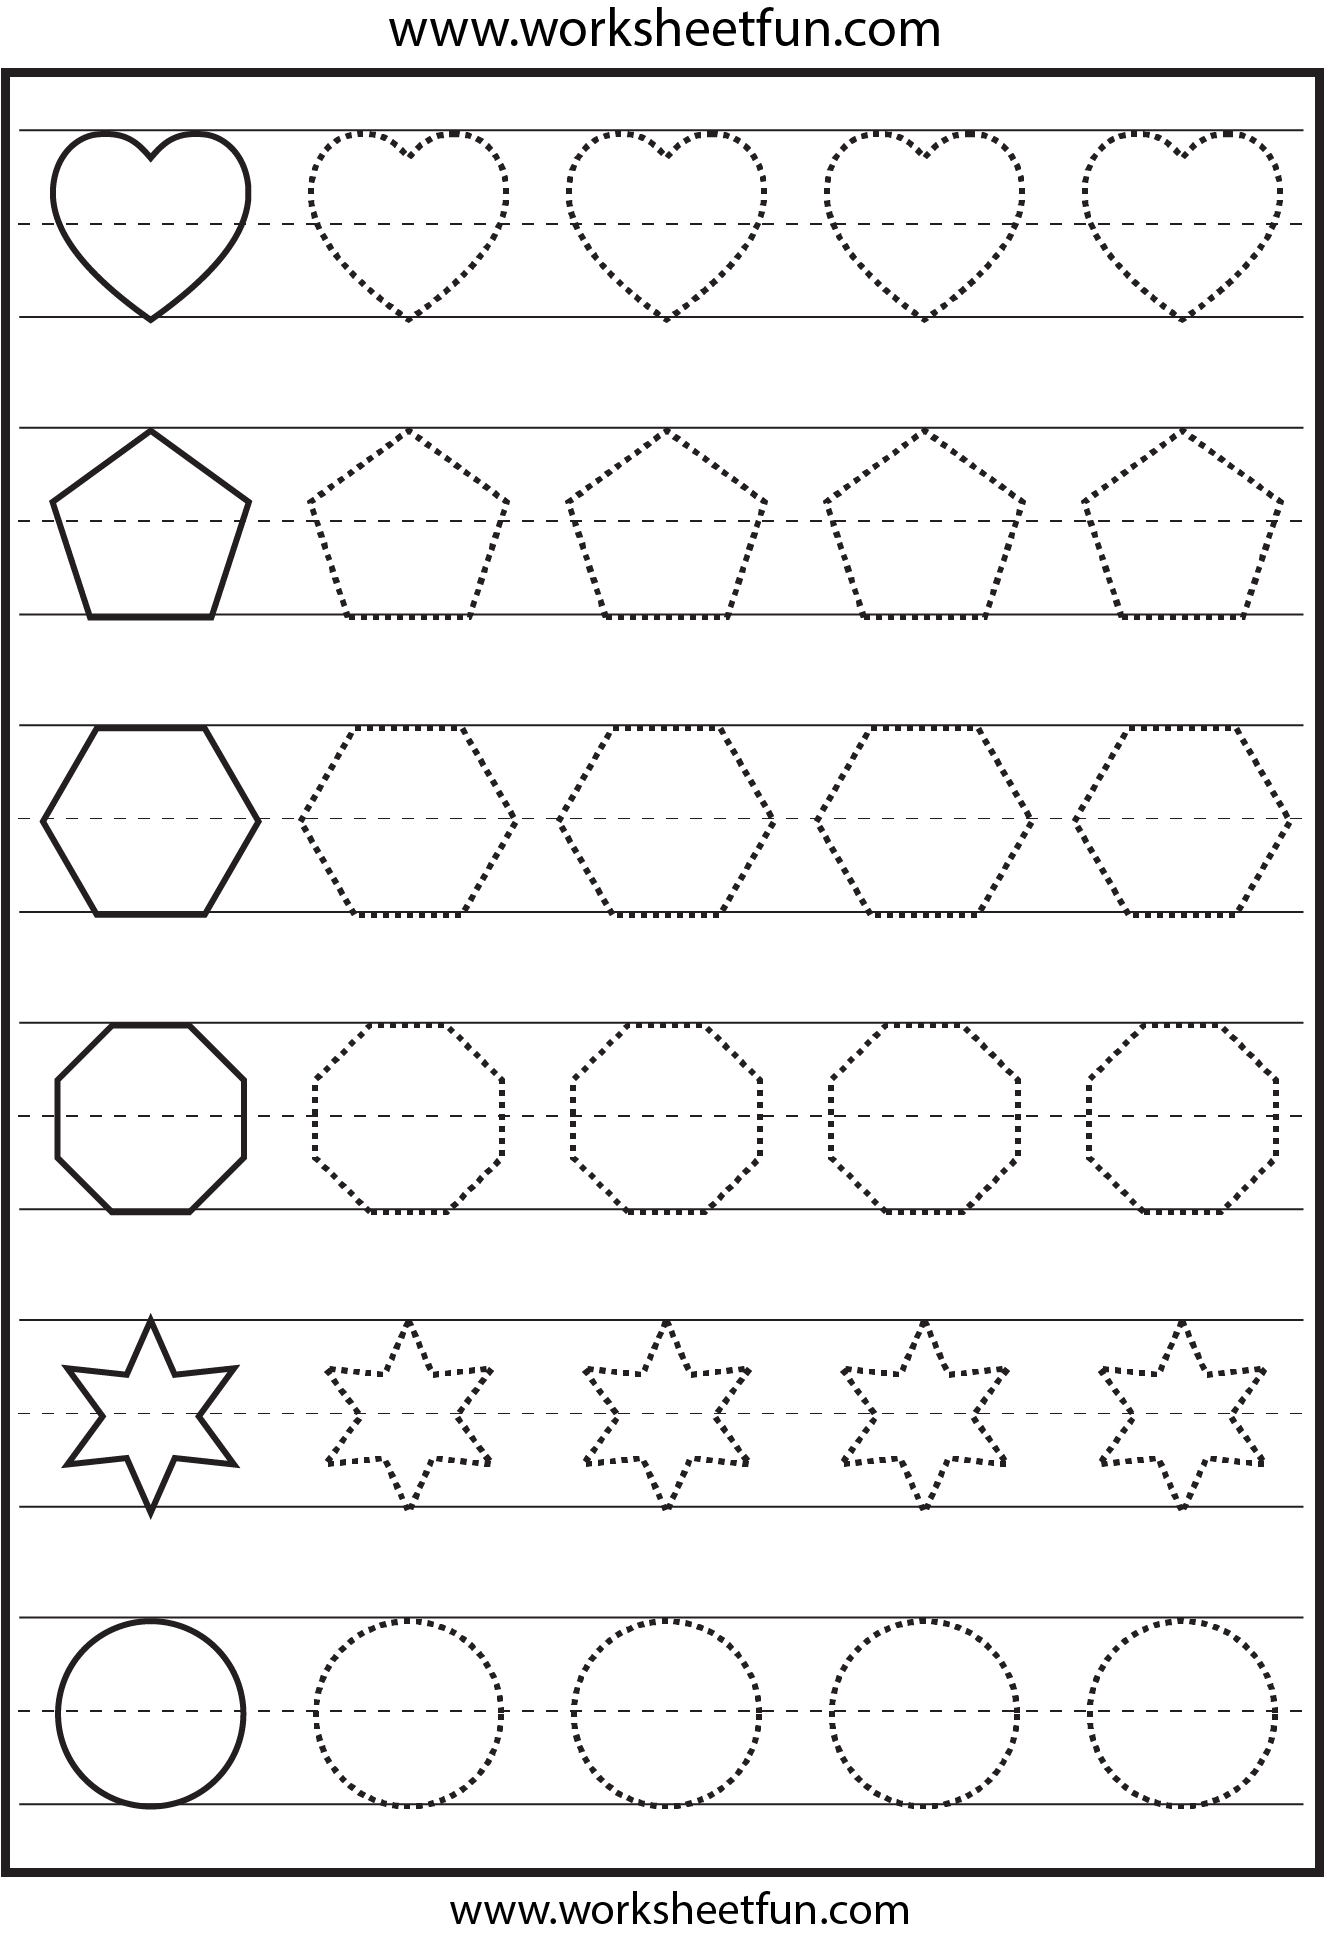 Pin On Printables To Laminate For Shoeboxes